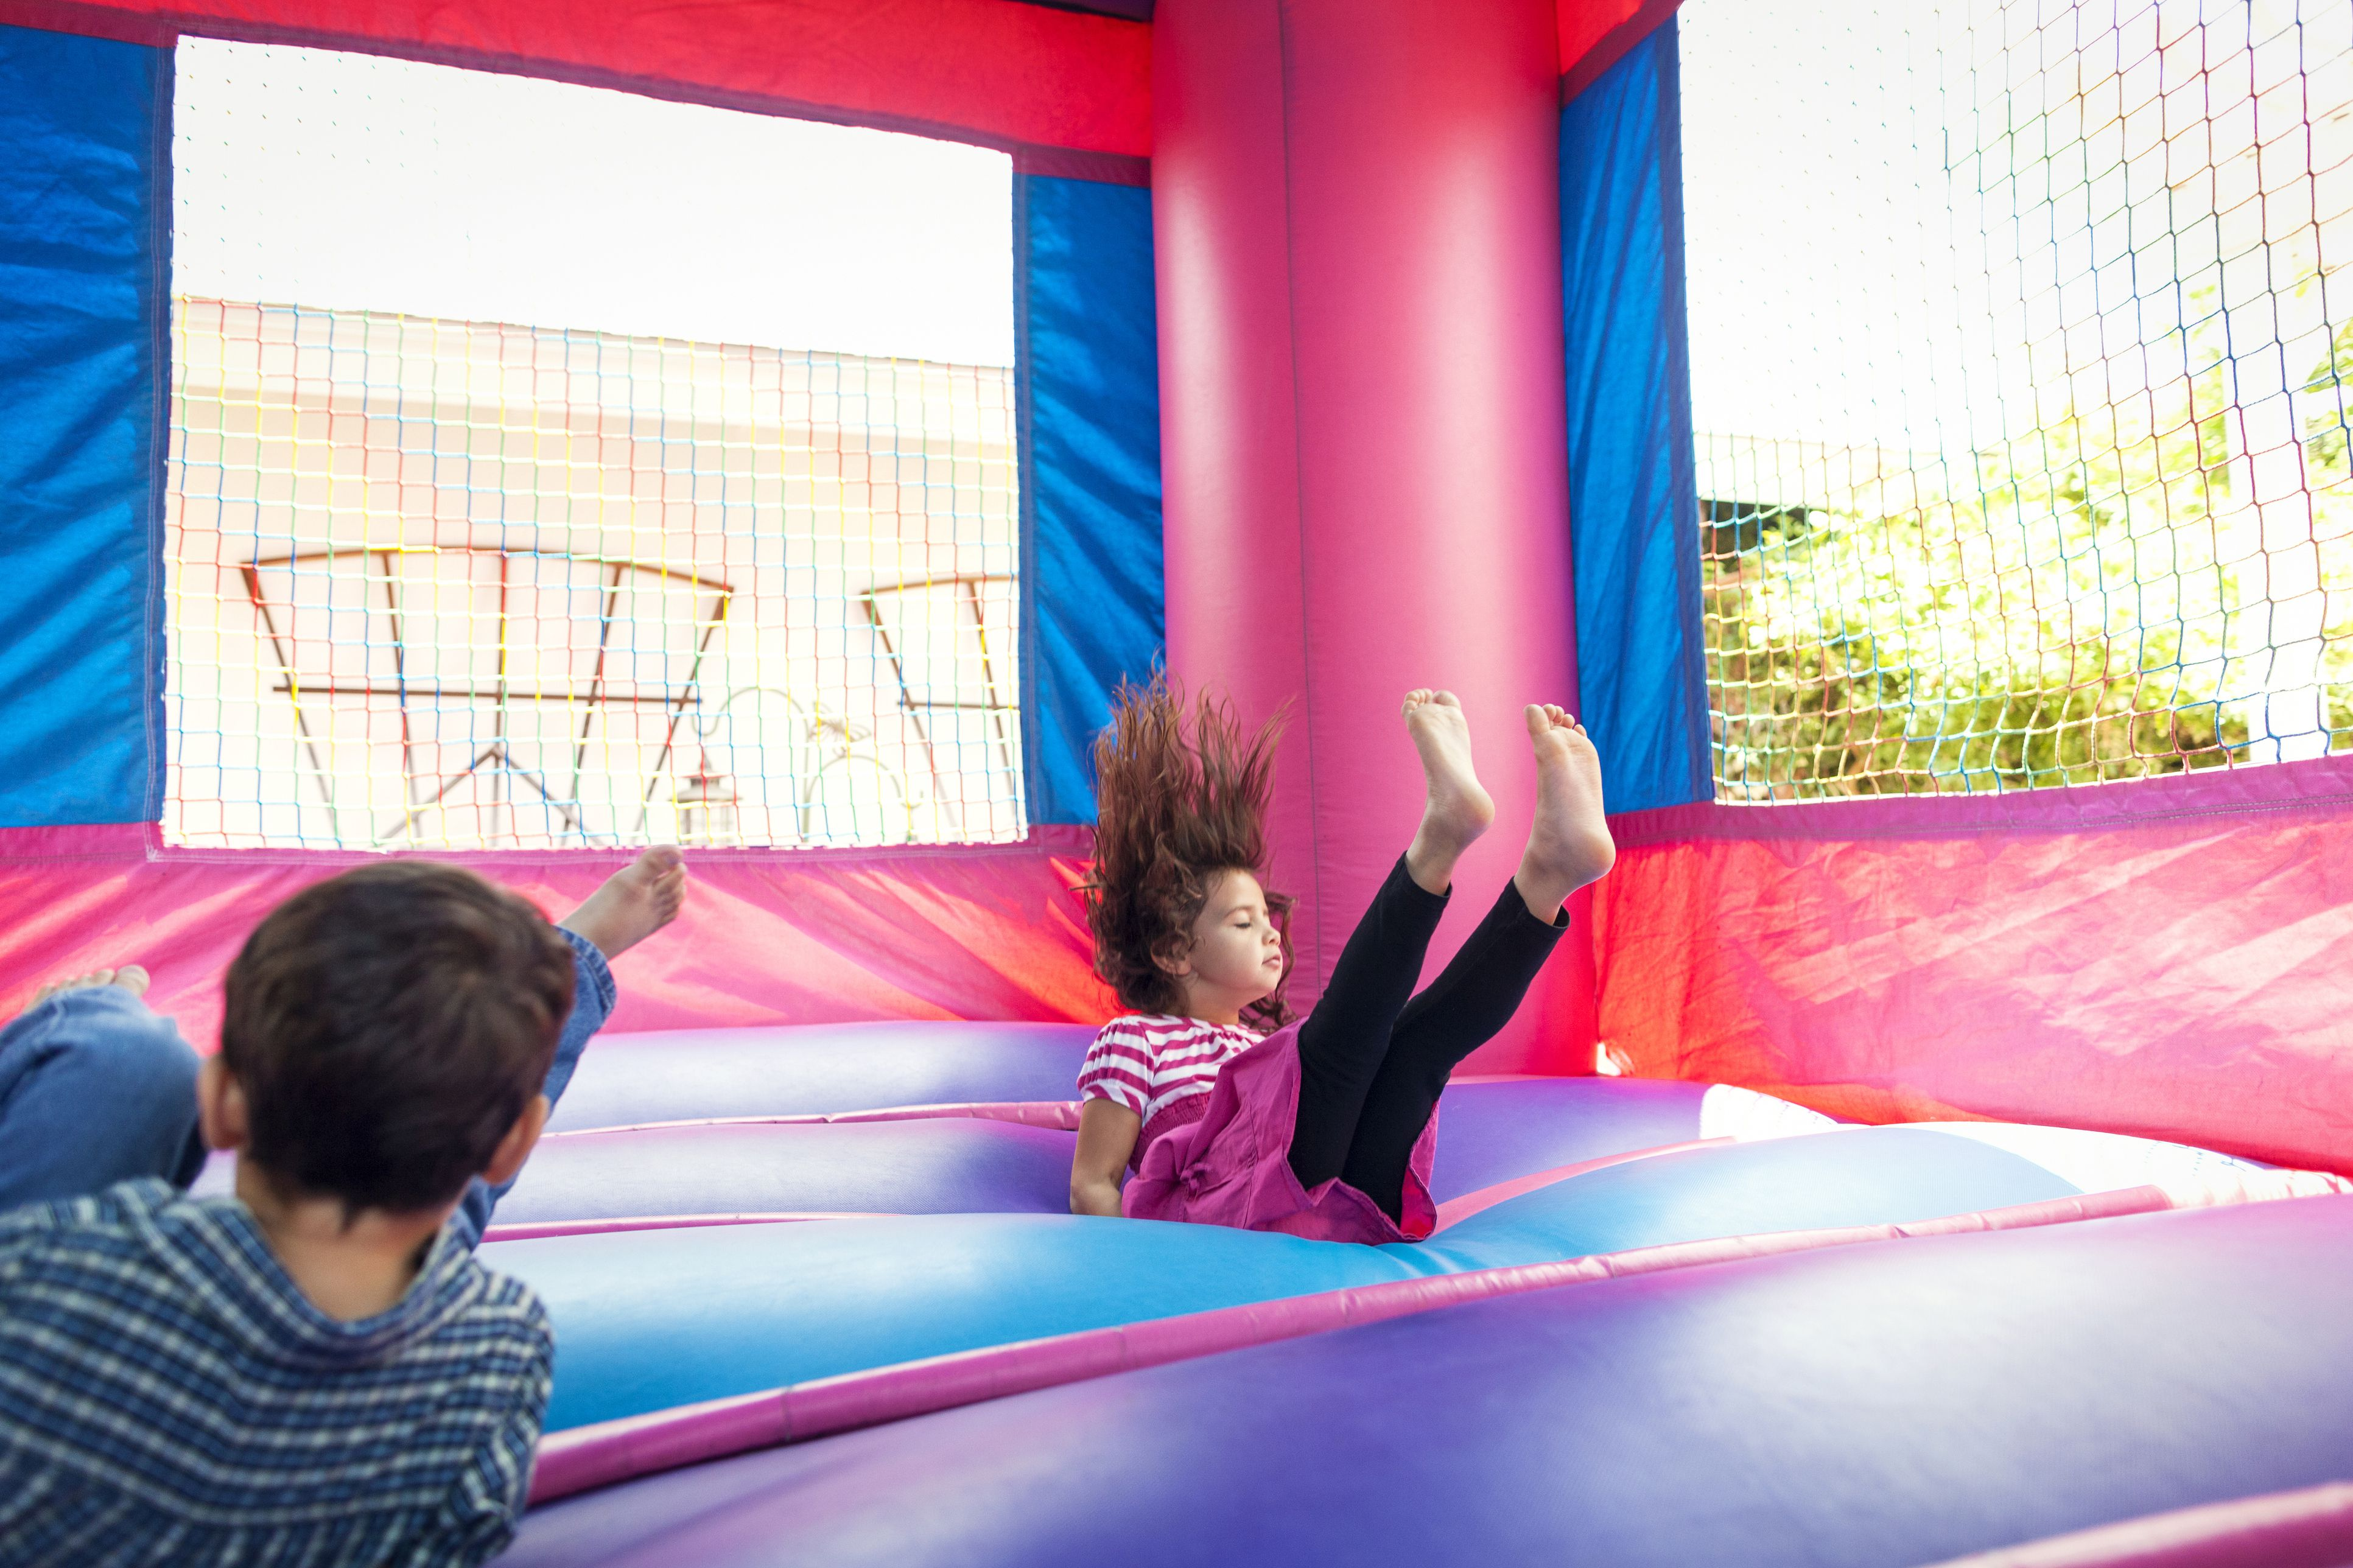 Non petitive Active Games for Kids Parties